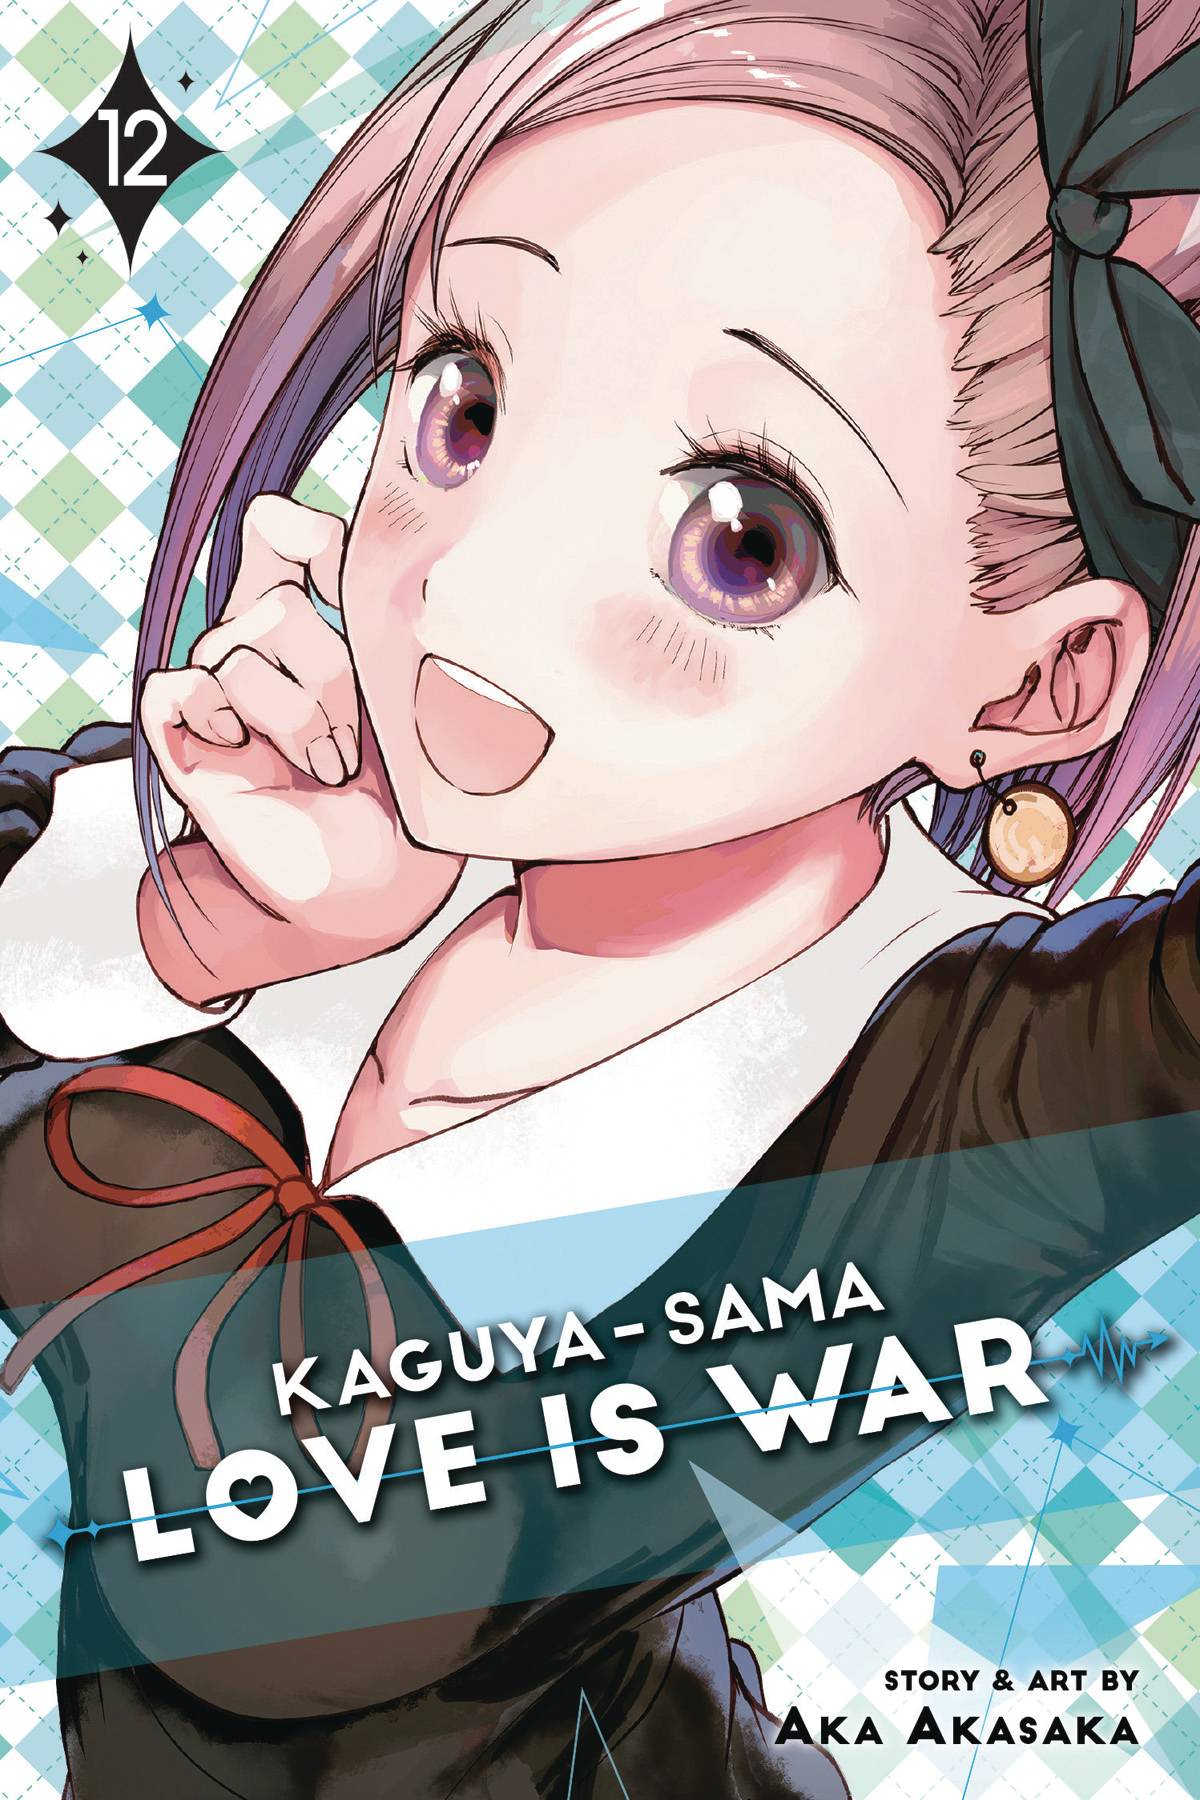 Kaguya-sama: Love is War Volume 12